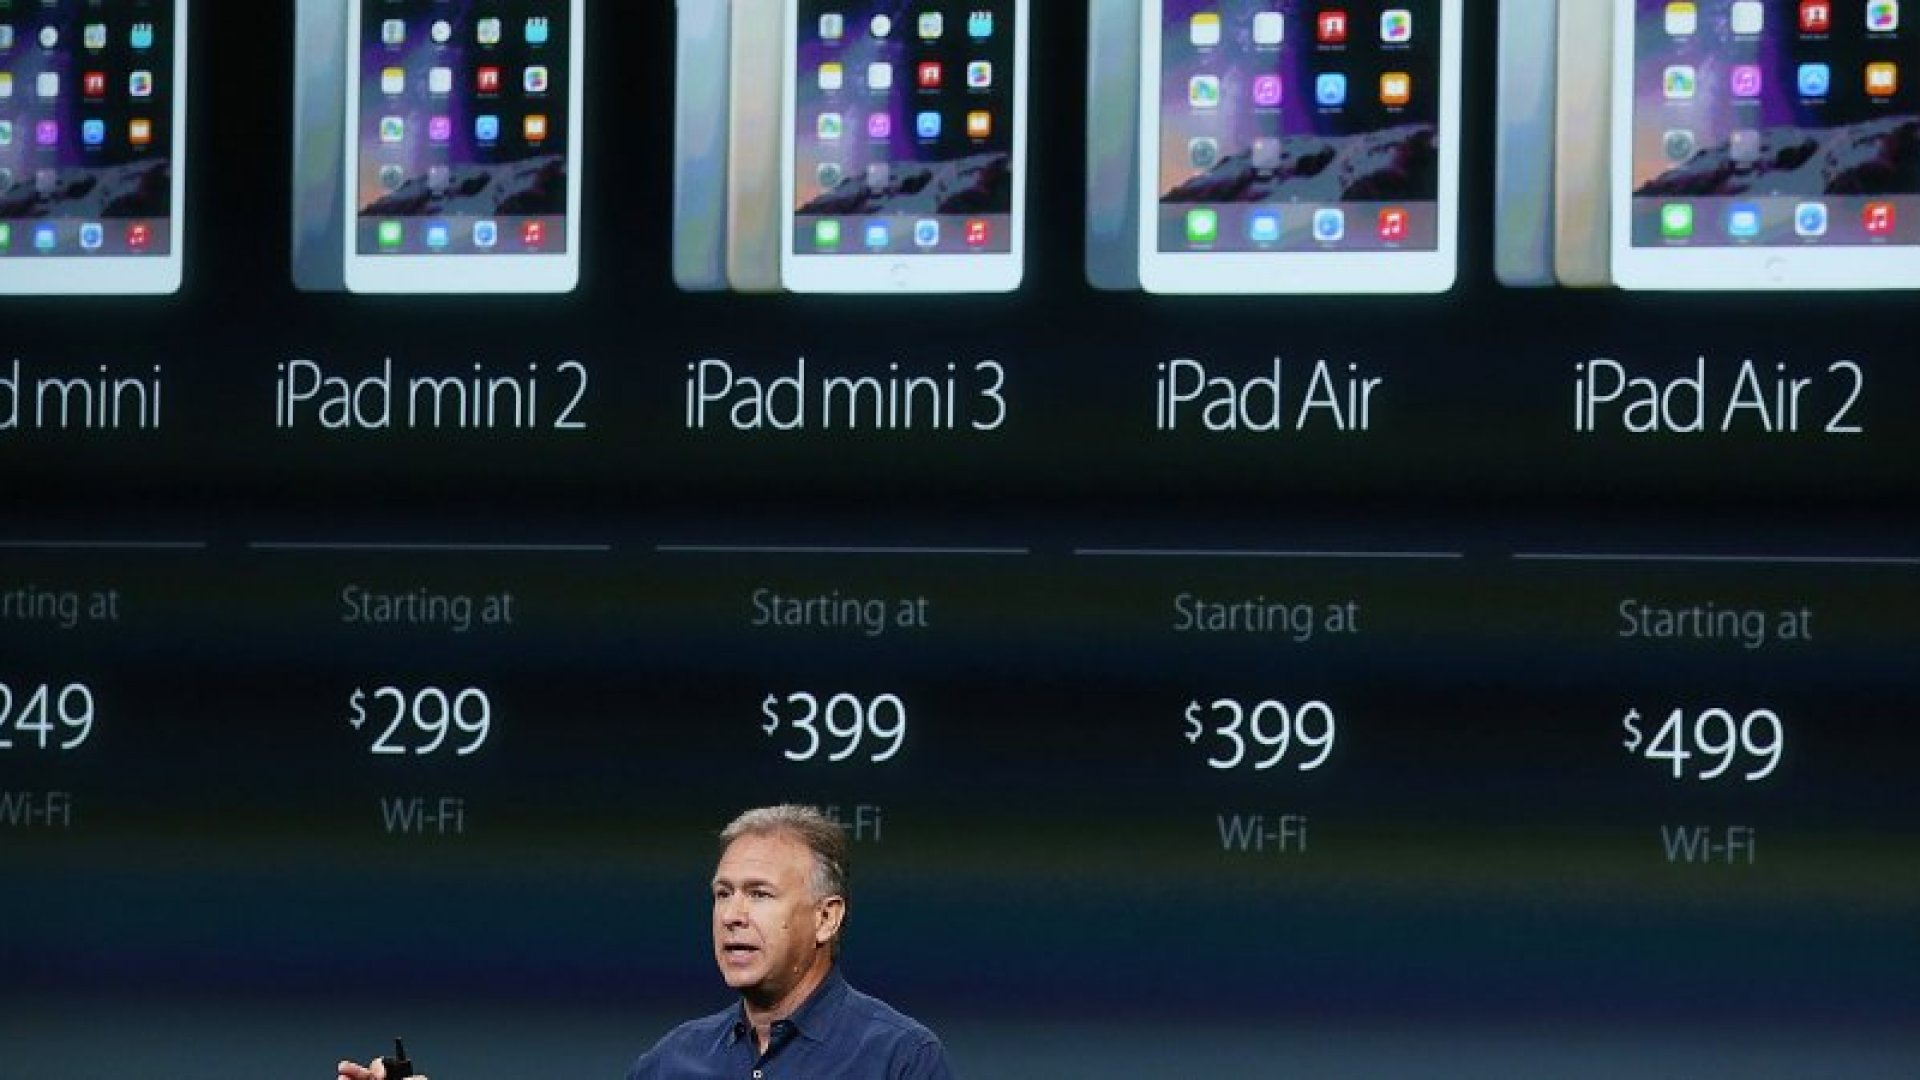 Apple Senior Vice President of Worldwide Marketing Phil Schiller announces the new iPad Air 2 during a special event on October 16, 2014 in Cupertino, California.  Apple unveiled the new iPad Air 2 tablet, iPad Mini 3 and a Retina iMac.  (Photo by Justin Sullivan/Getty Images)